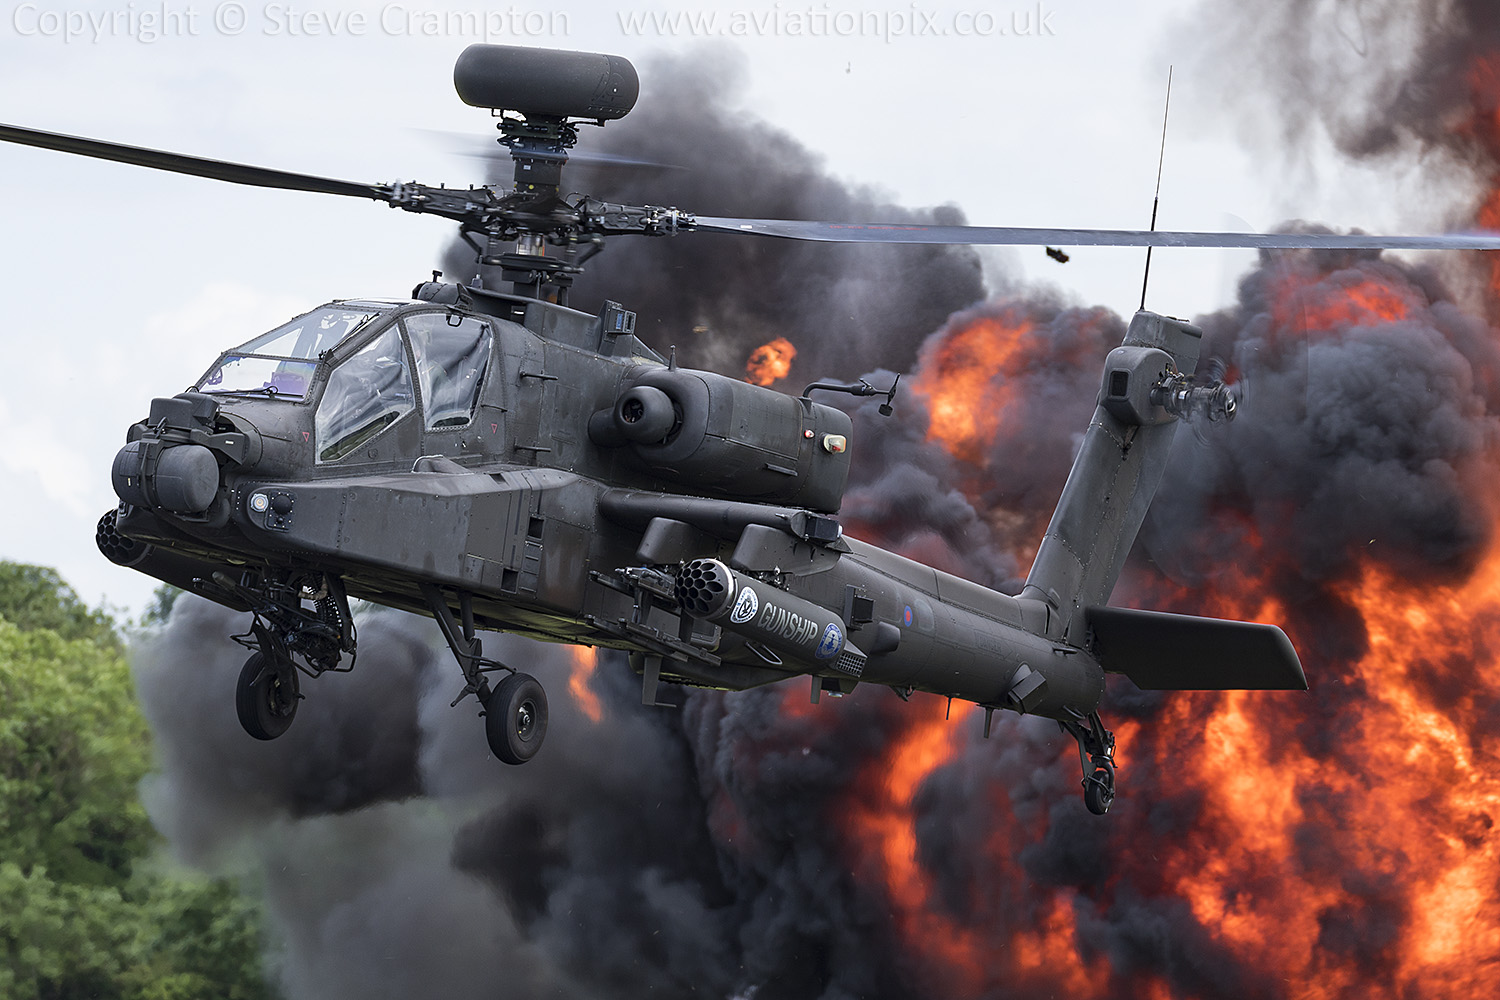 Attack Helicopter Display Team AH-64 Apache